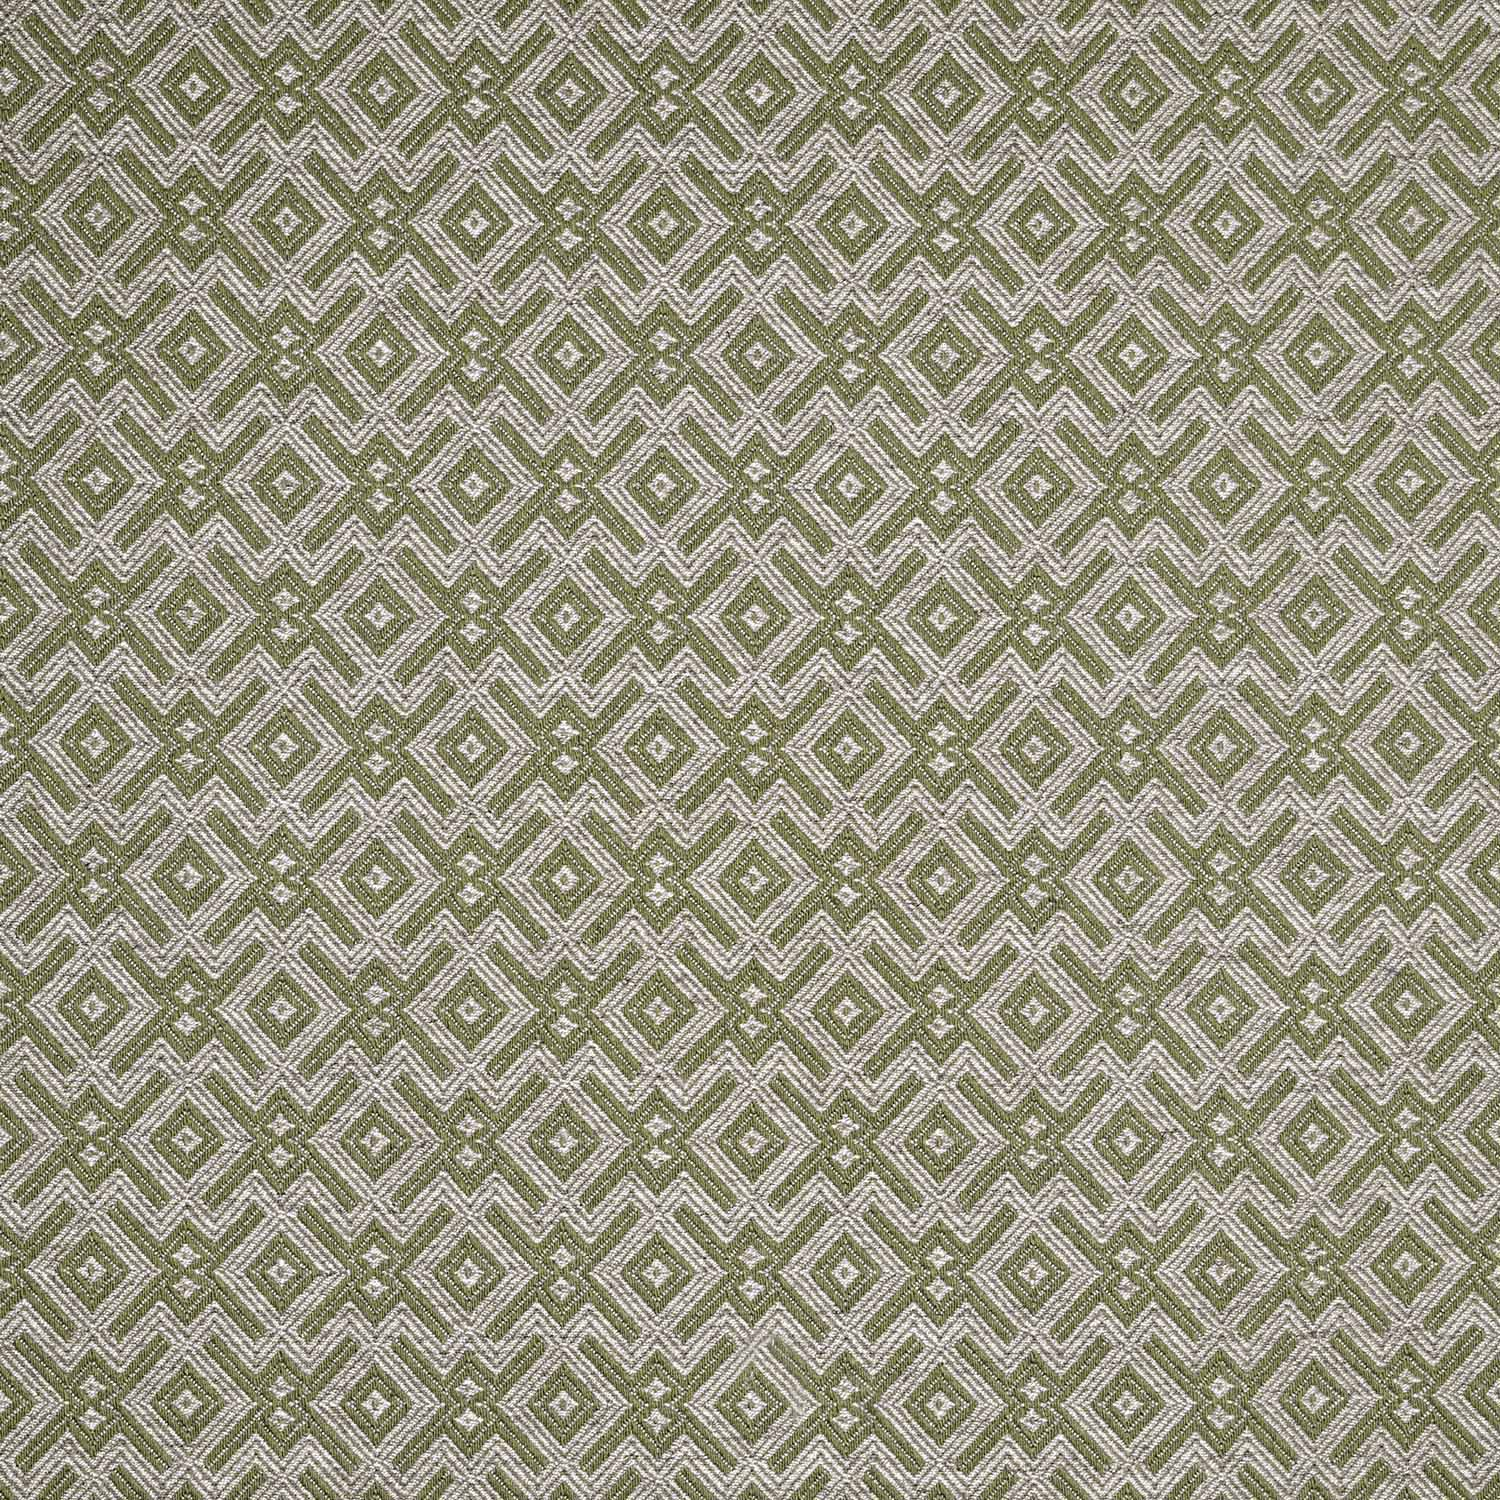 <p><strong>AMESBURY</strong>green 1310-02<a href=/the-winthorp-collection/amersbury-green-1310-02>More →</a></p>